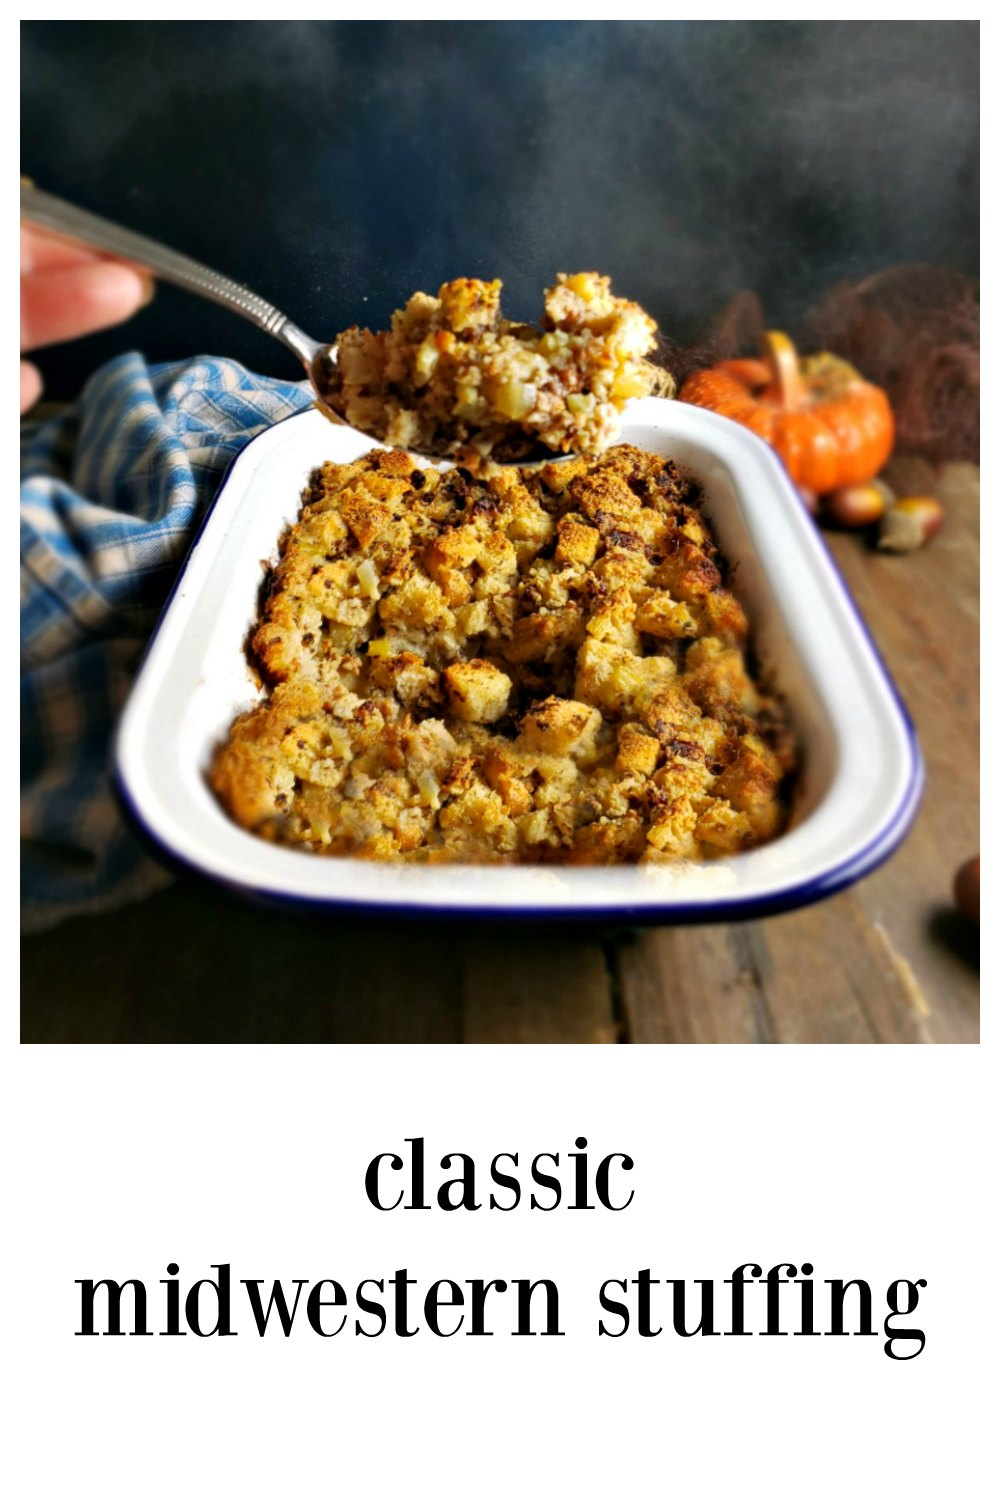 Classic Stuffing: Just a great Midwestern Crowd-Pleasing Stuffing. Like your Mom or Grandma made!! There's nothing fancy, nothing exotic, just the perfect stuffing for Thanksgiving or Christmas. #ClassicStuffing #ClassicMidwesternStuffingorDressing #ClassicDressing, #SausageStuffing #TurkeyStuffing #TurkeyDressing